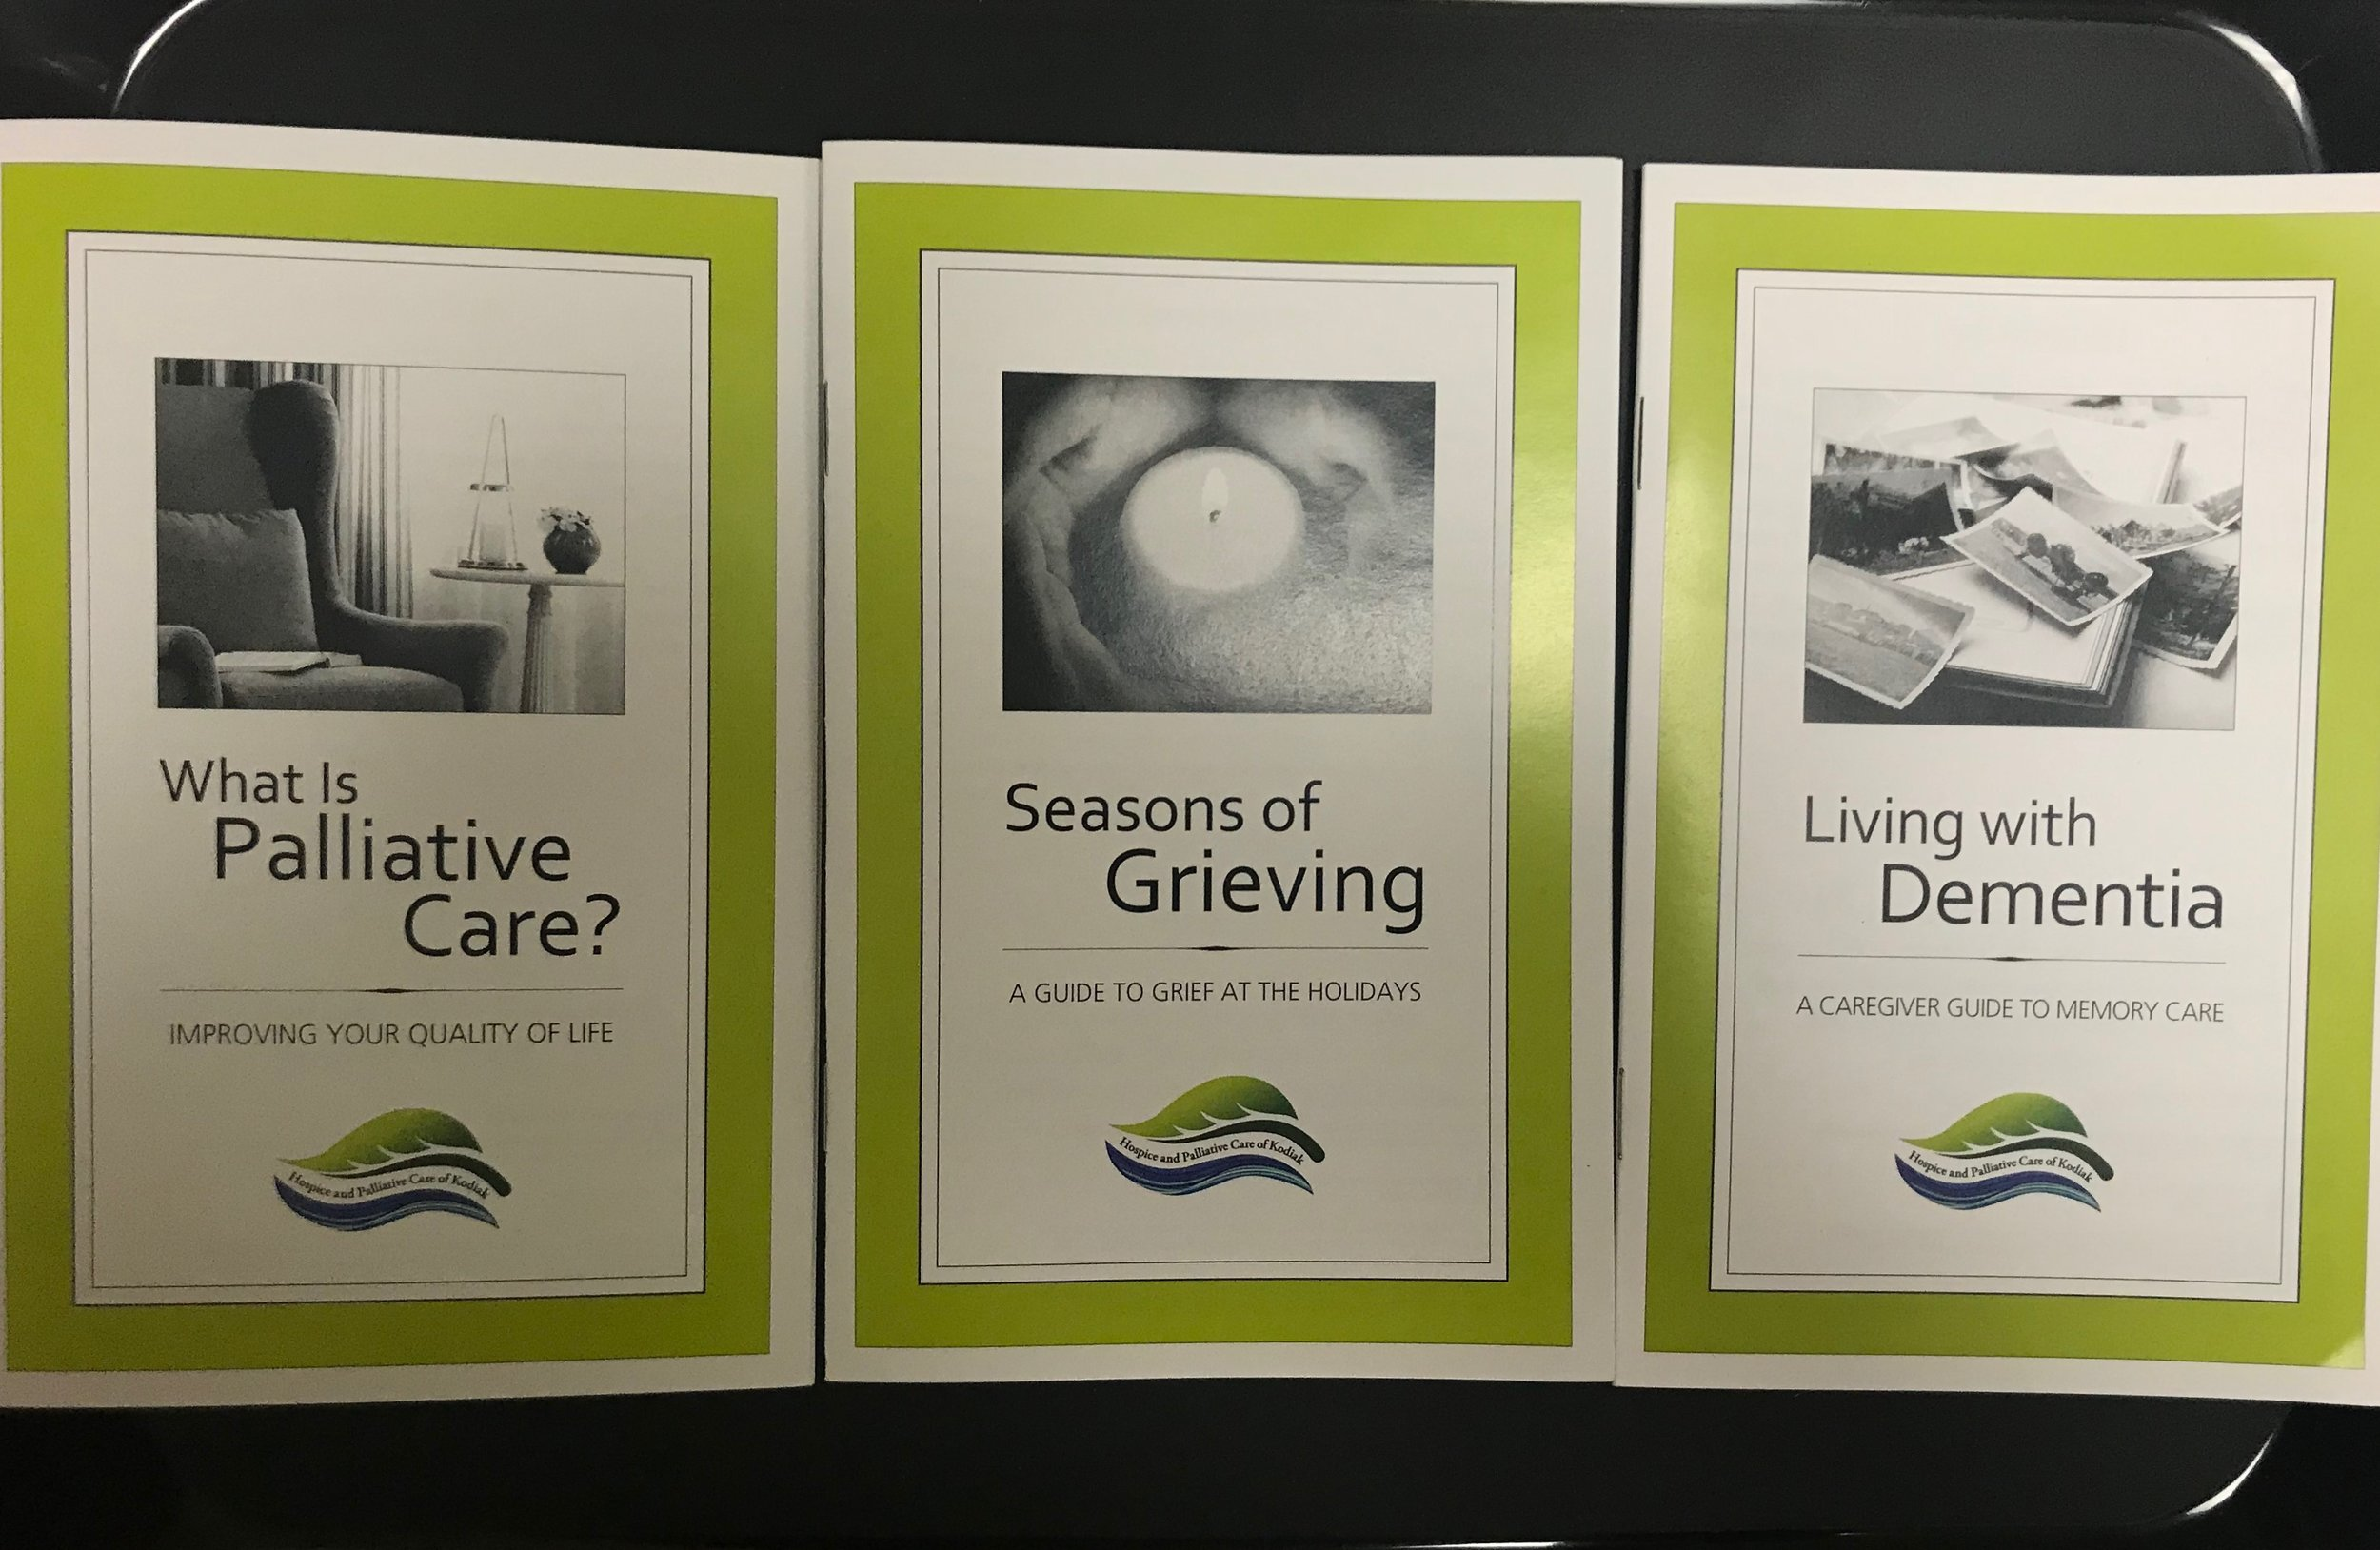 We stock Quality of Life booklets on Palliative Care, Seasons of Grieving, and Living with Dementia. These booklets are a great resource.